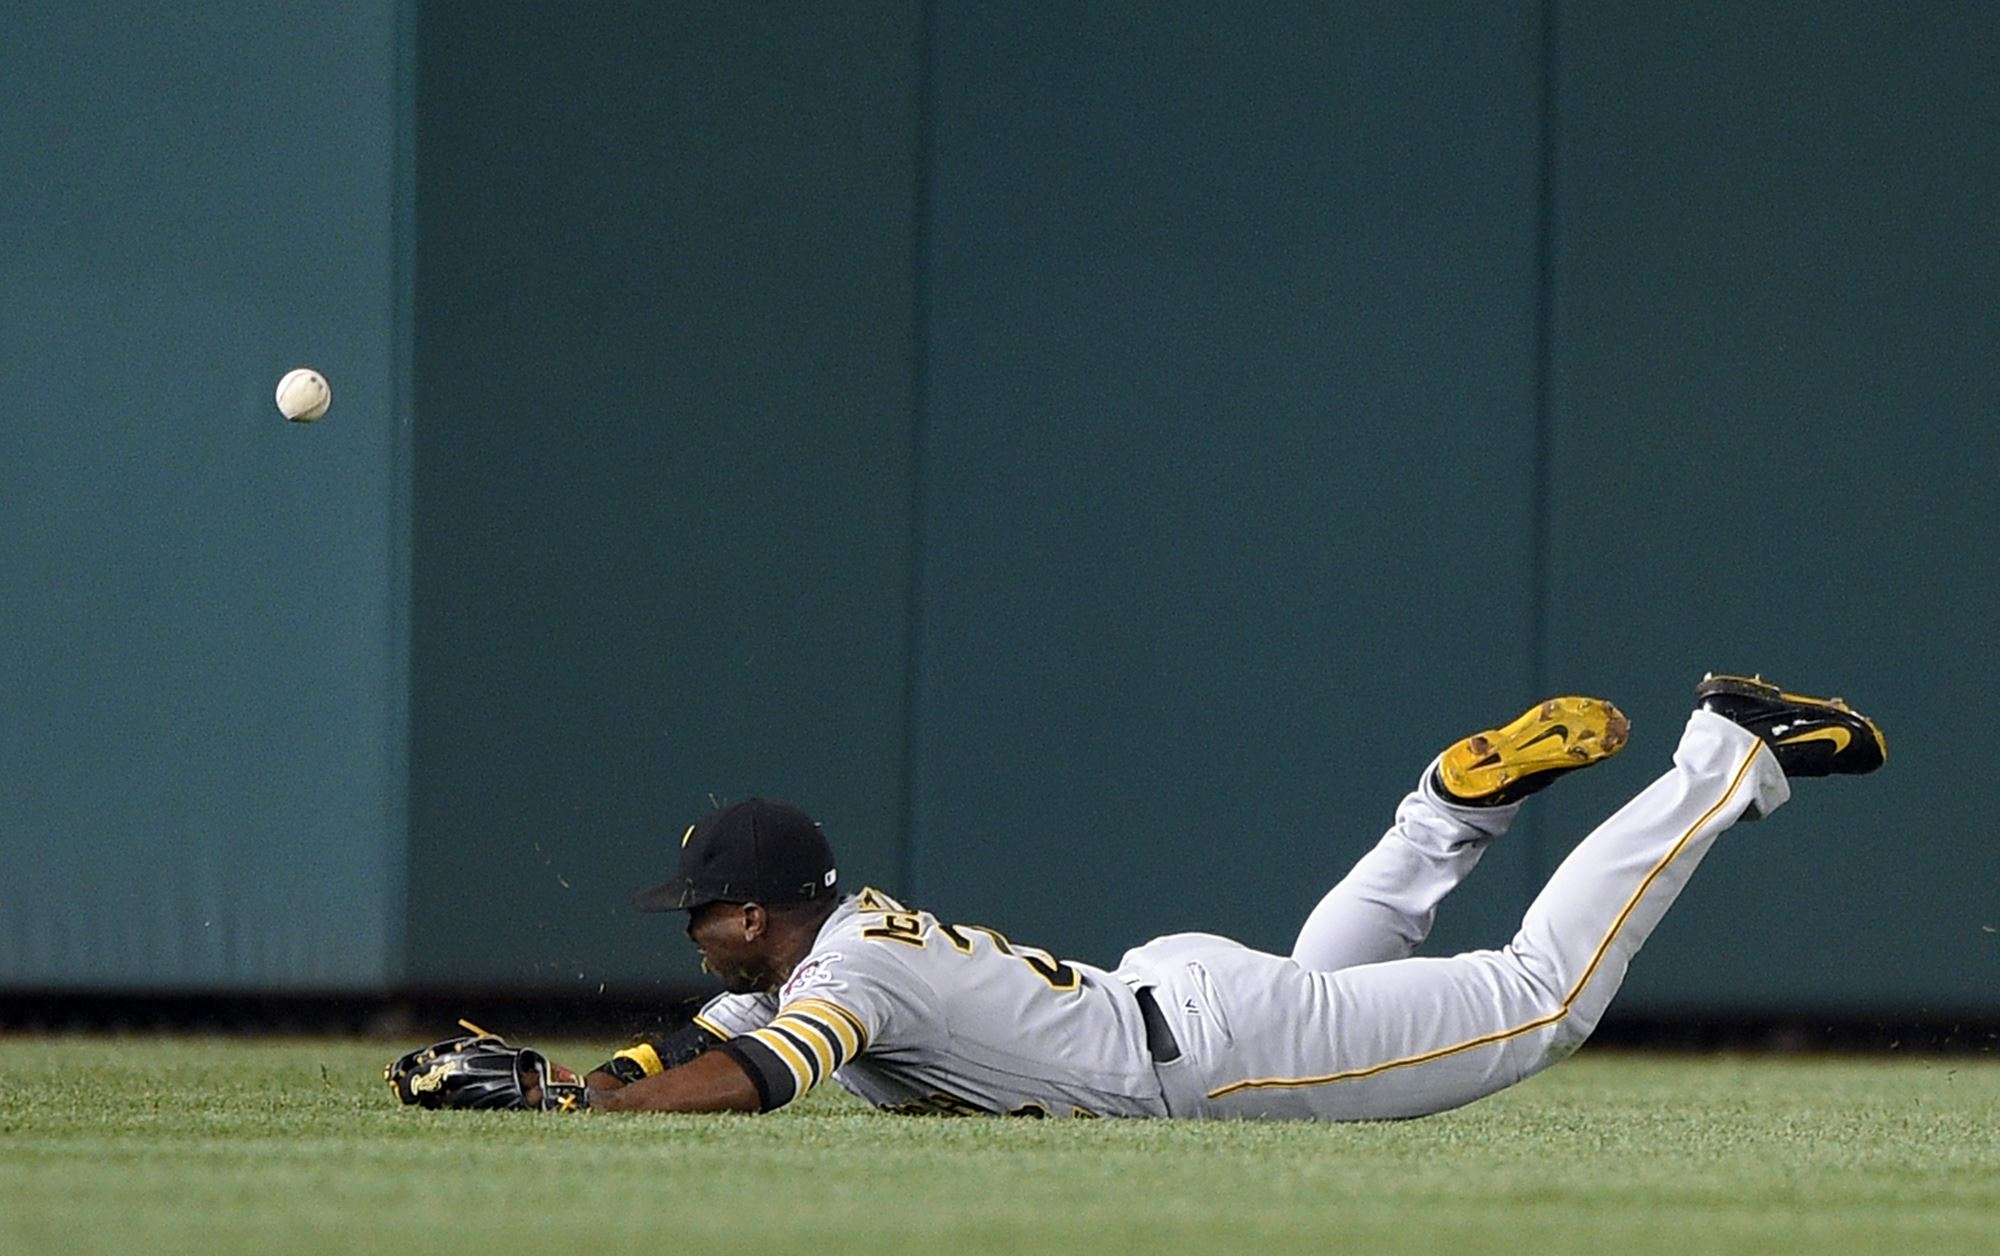 Pirates lose second in a row, 6-0, to Nationals